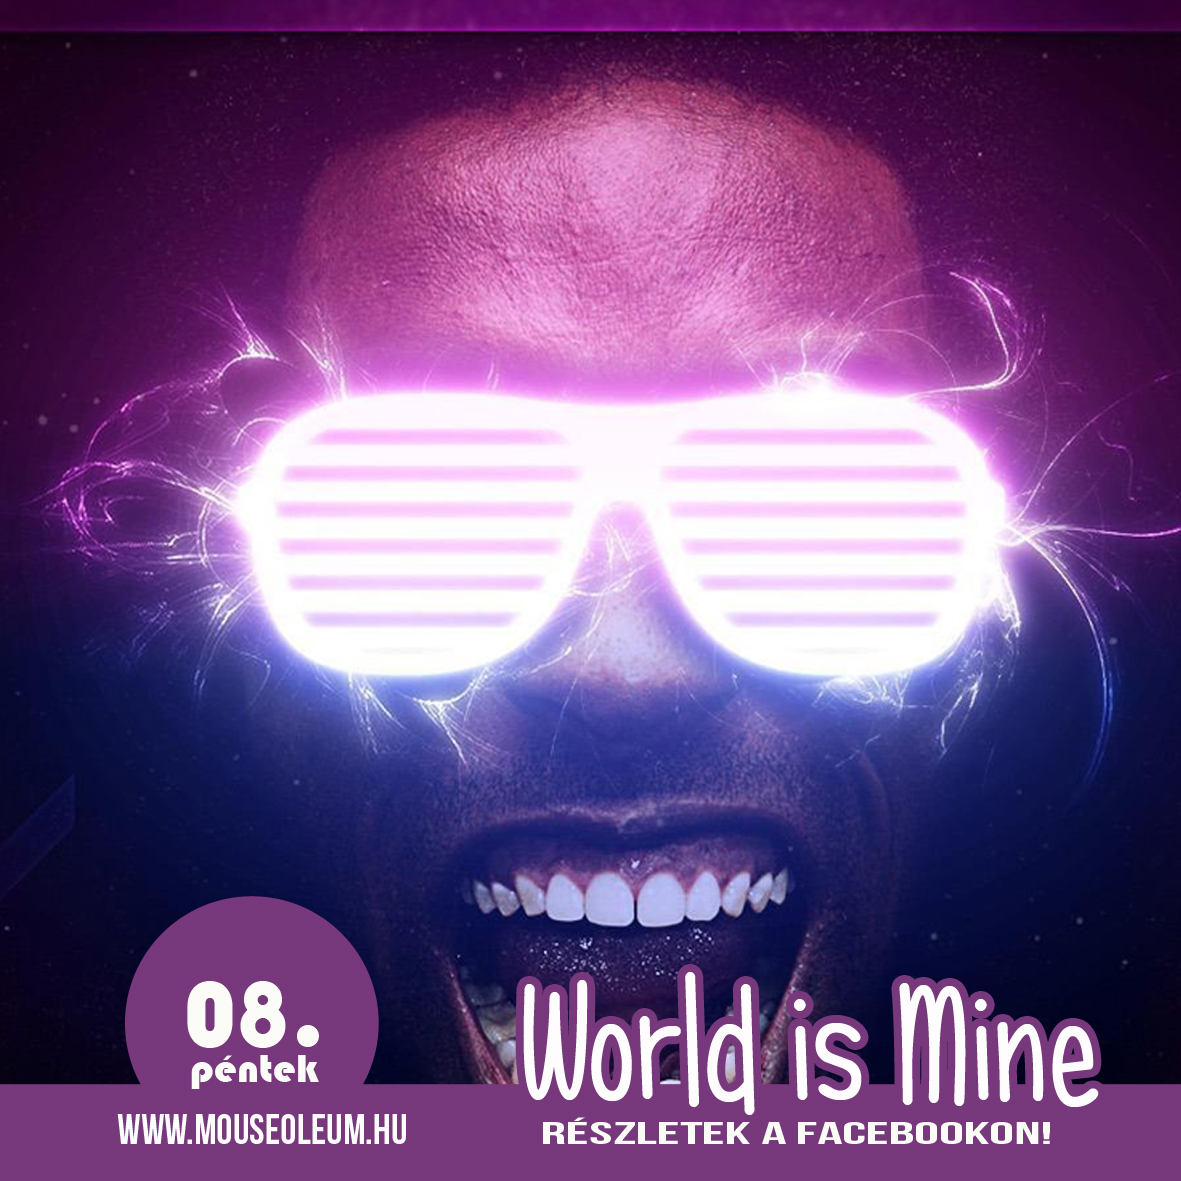 World is mine party